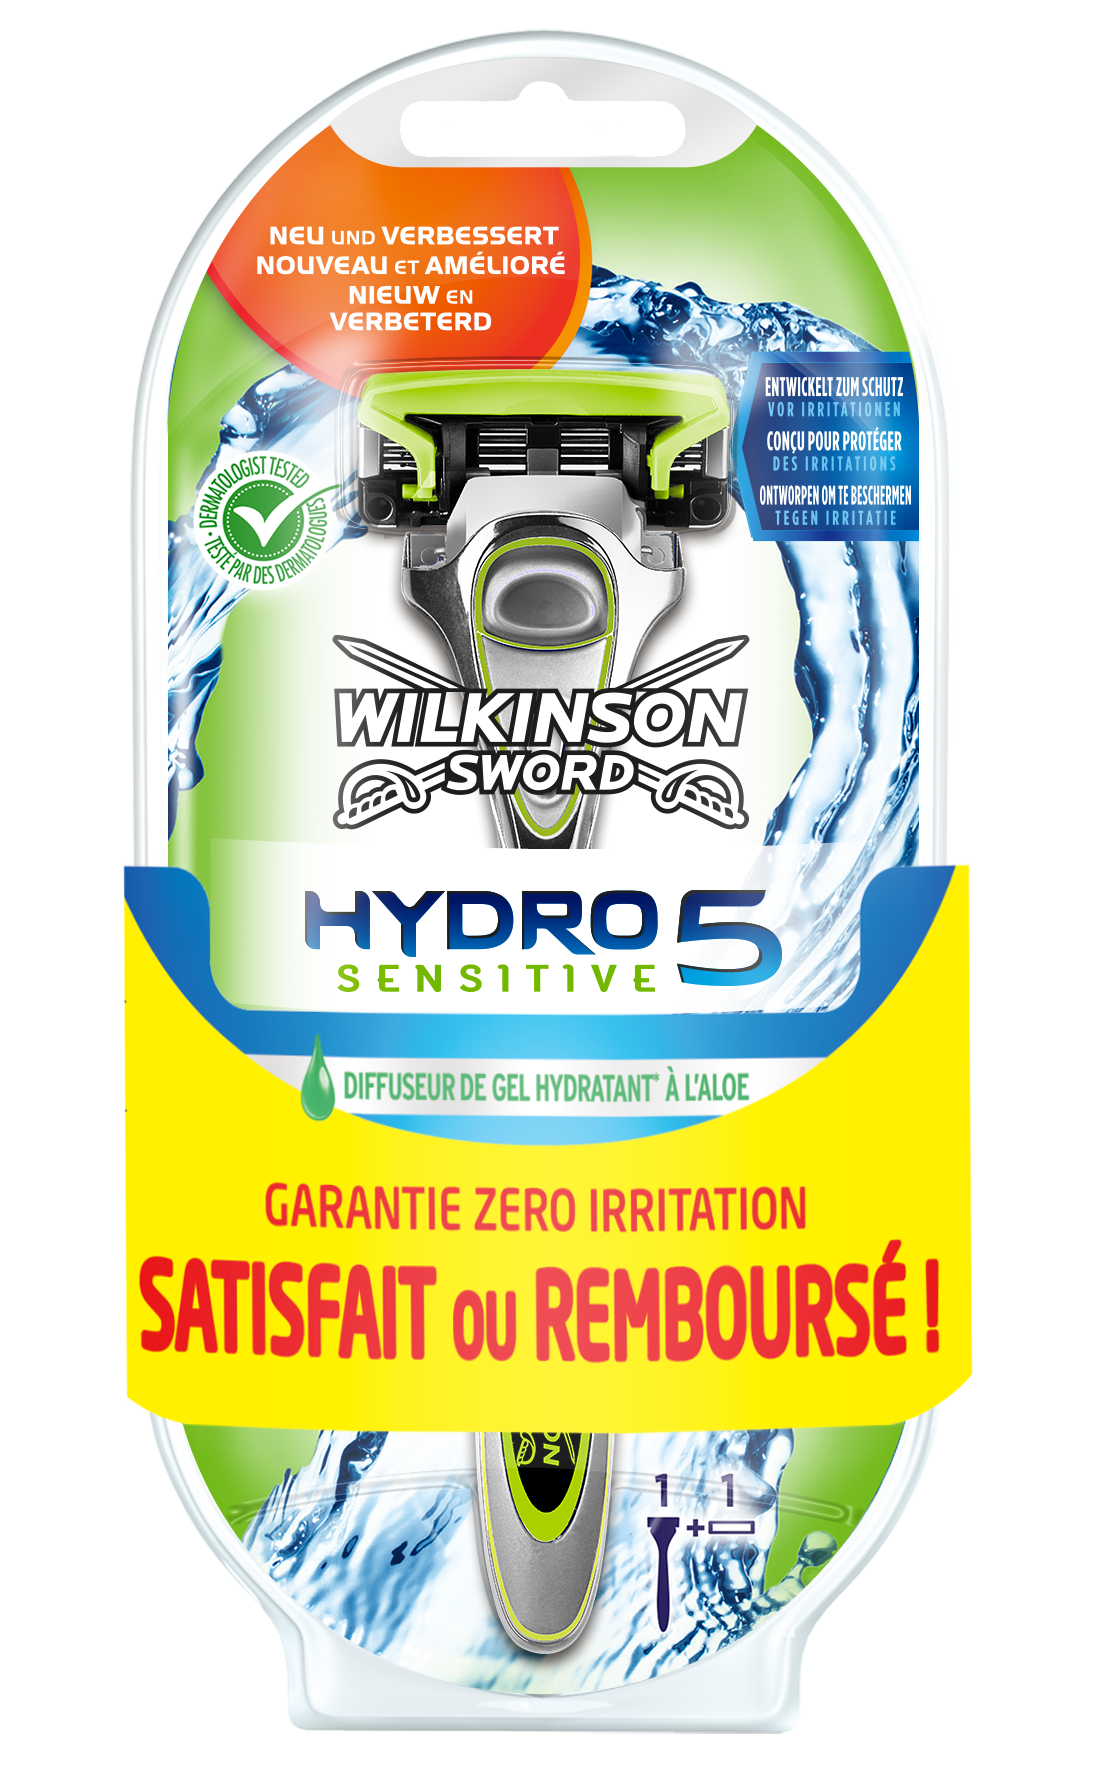 http://www.mywilkinson.fr/img/H5_satisfaitourembourse.png